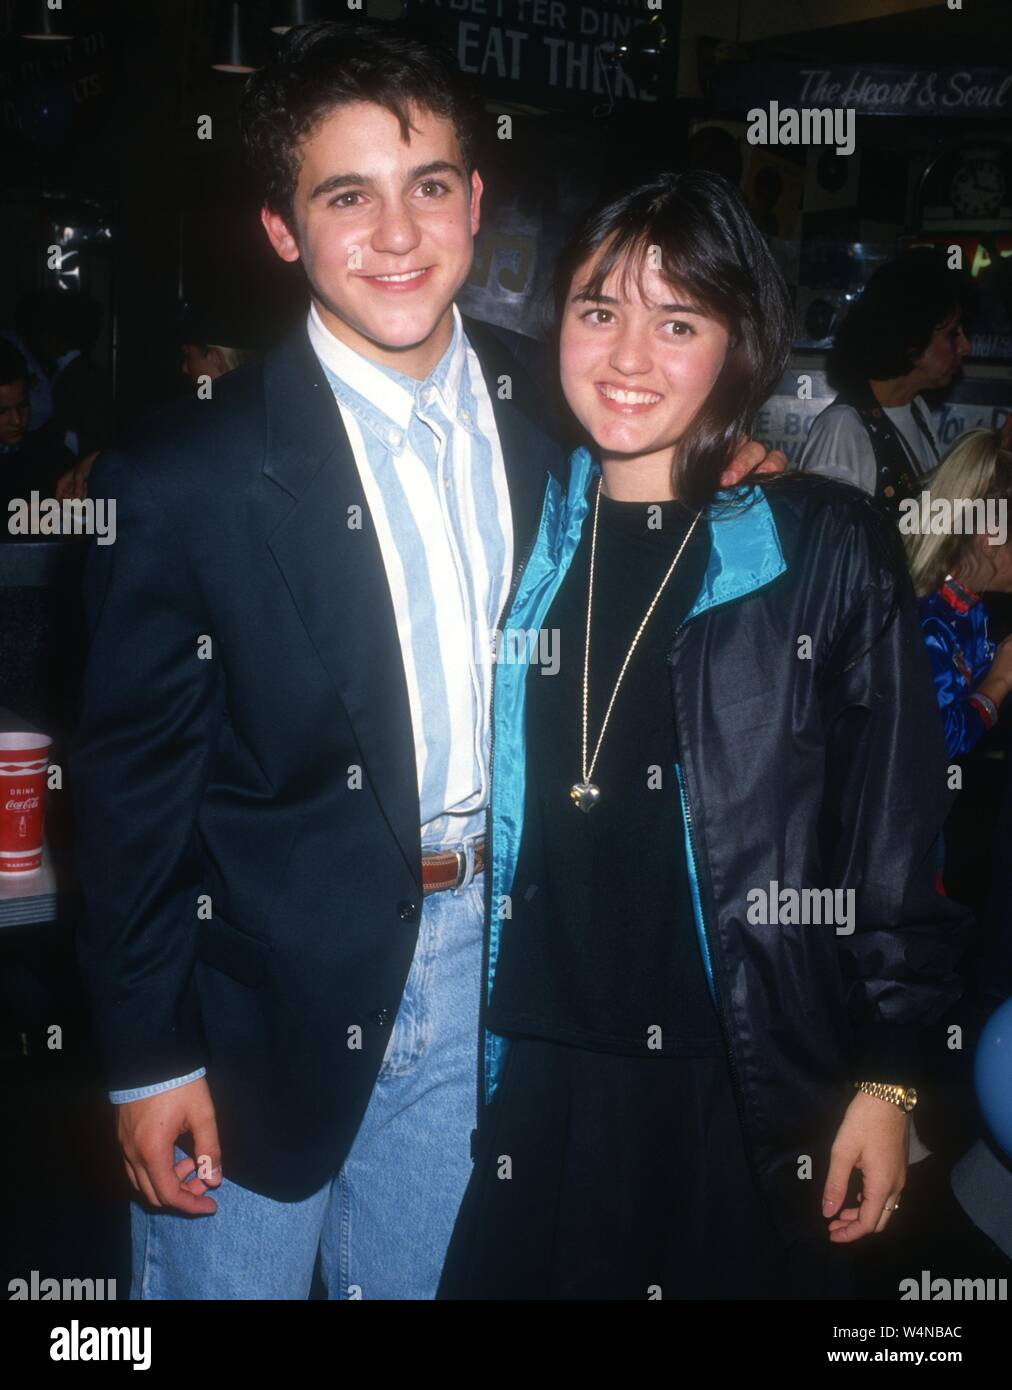 Fred Savage High Resolution Stock Photography And Images Alamy Kala lynne savage (born october 16, 1978) is an american actress. https www alamy com fred savage danica mckellar 1992 photo by michael fergusonphotolink image261084052 html